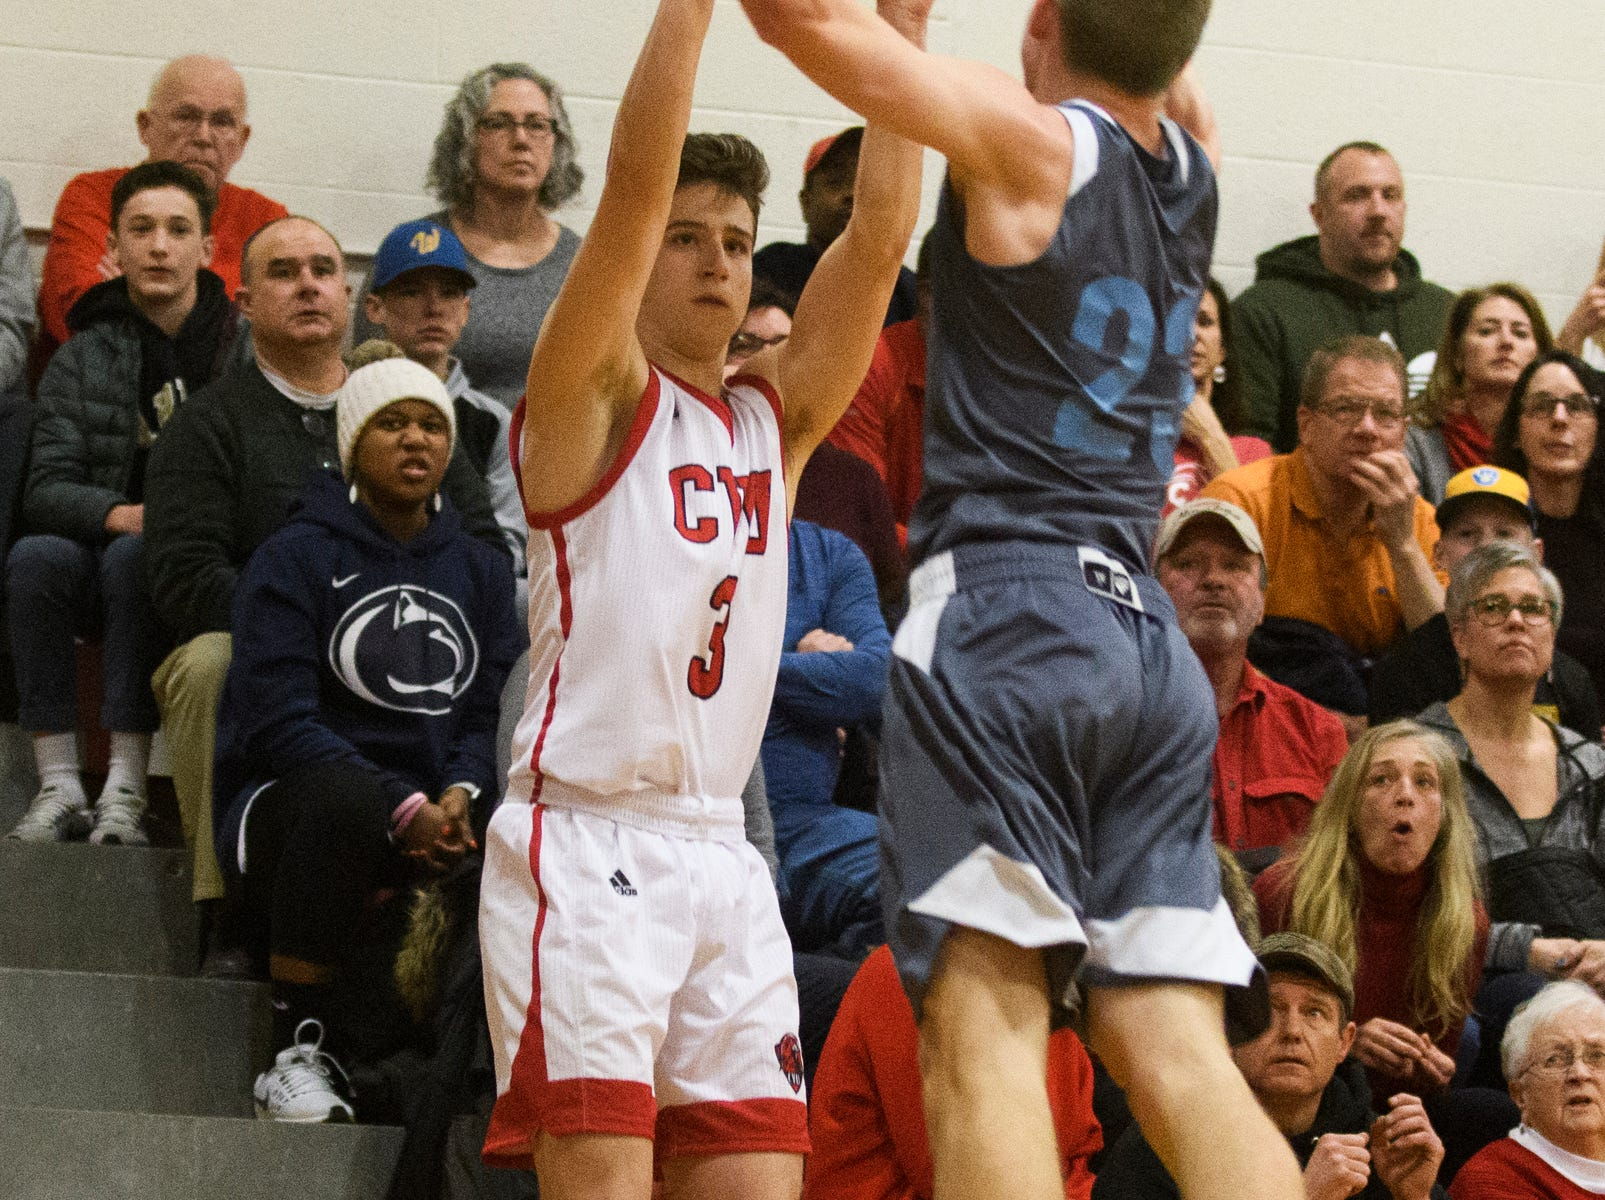 CVU's Jason West (3) shoots the ball over South Burlington's Tyler Gammon (23) during the boys basketball game between he South Burlington Wolves and the Champlain Valley Union Redhawks at CVU High School on Tuesday night March 5, 2019 in Hinesburg, Vermont.